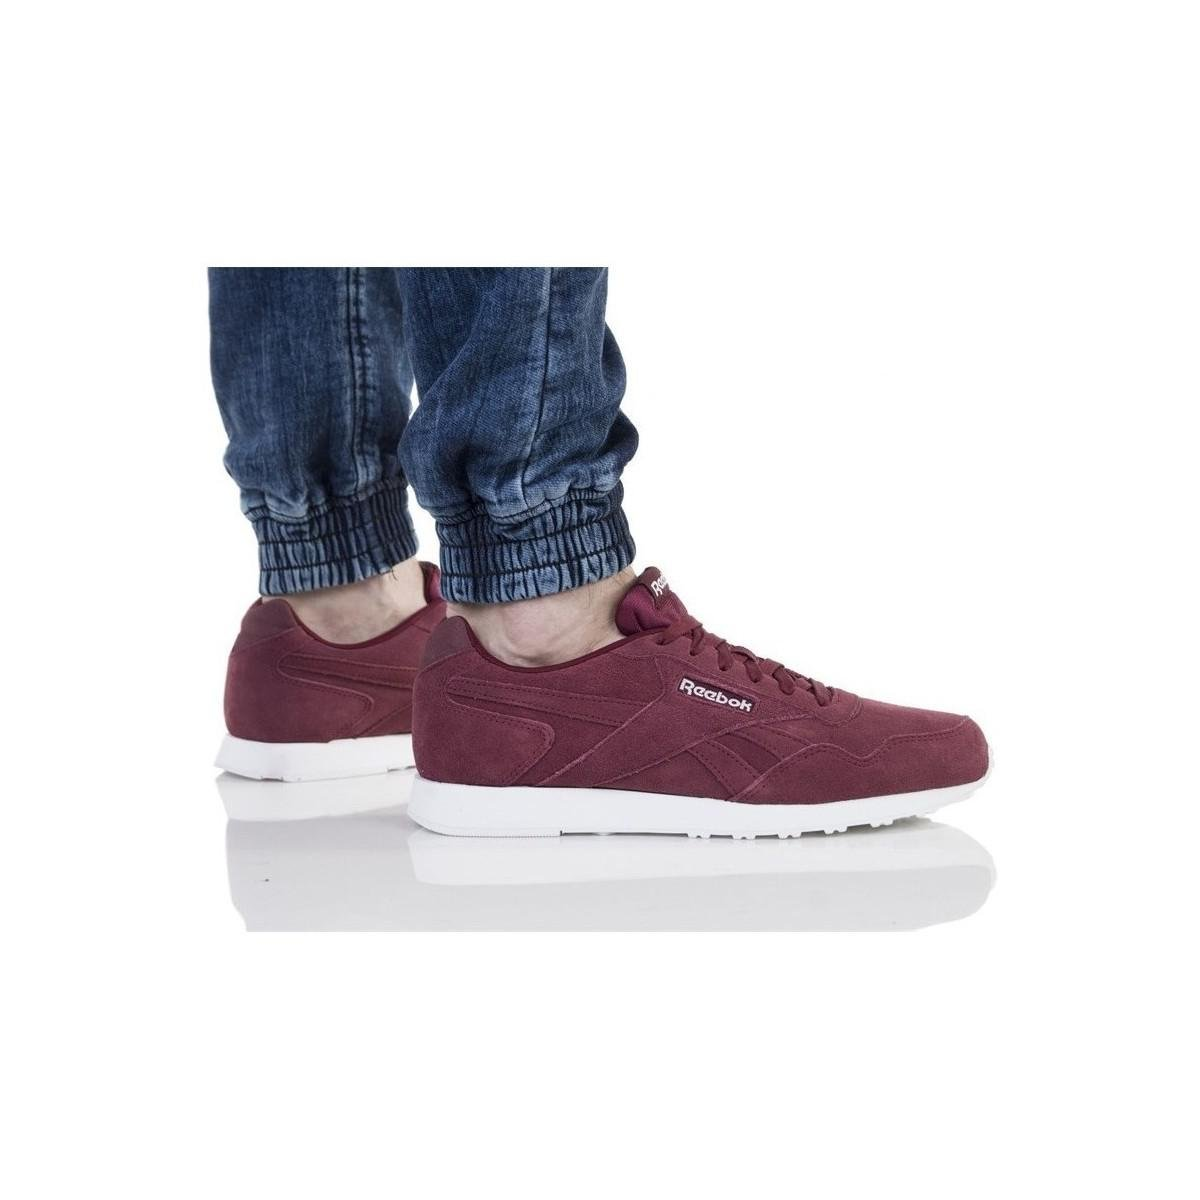 6202cd9567fad0 Reebok Royal Glide Lx Men s Shoes (trainers) In Red in Red for Men ...